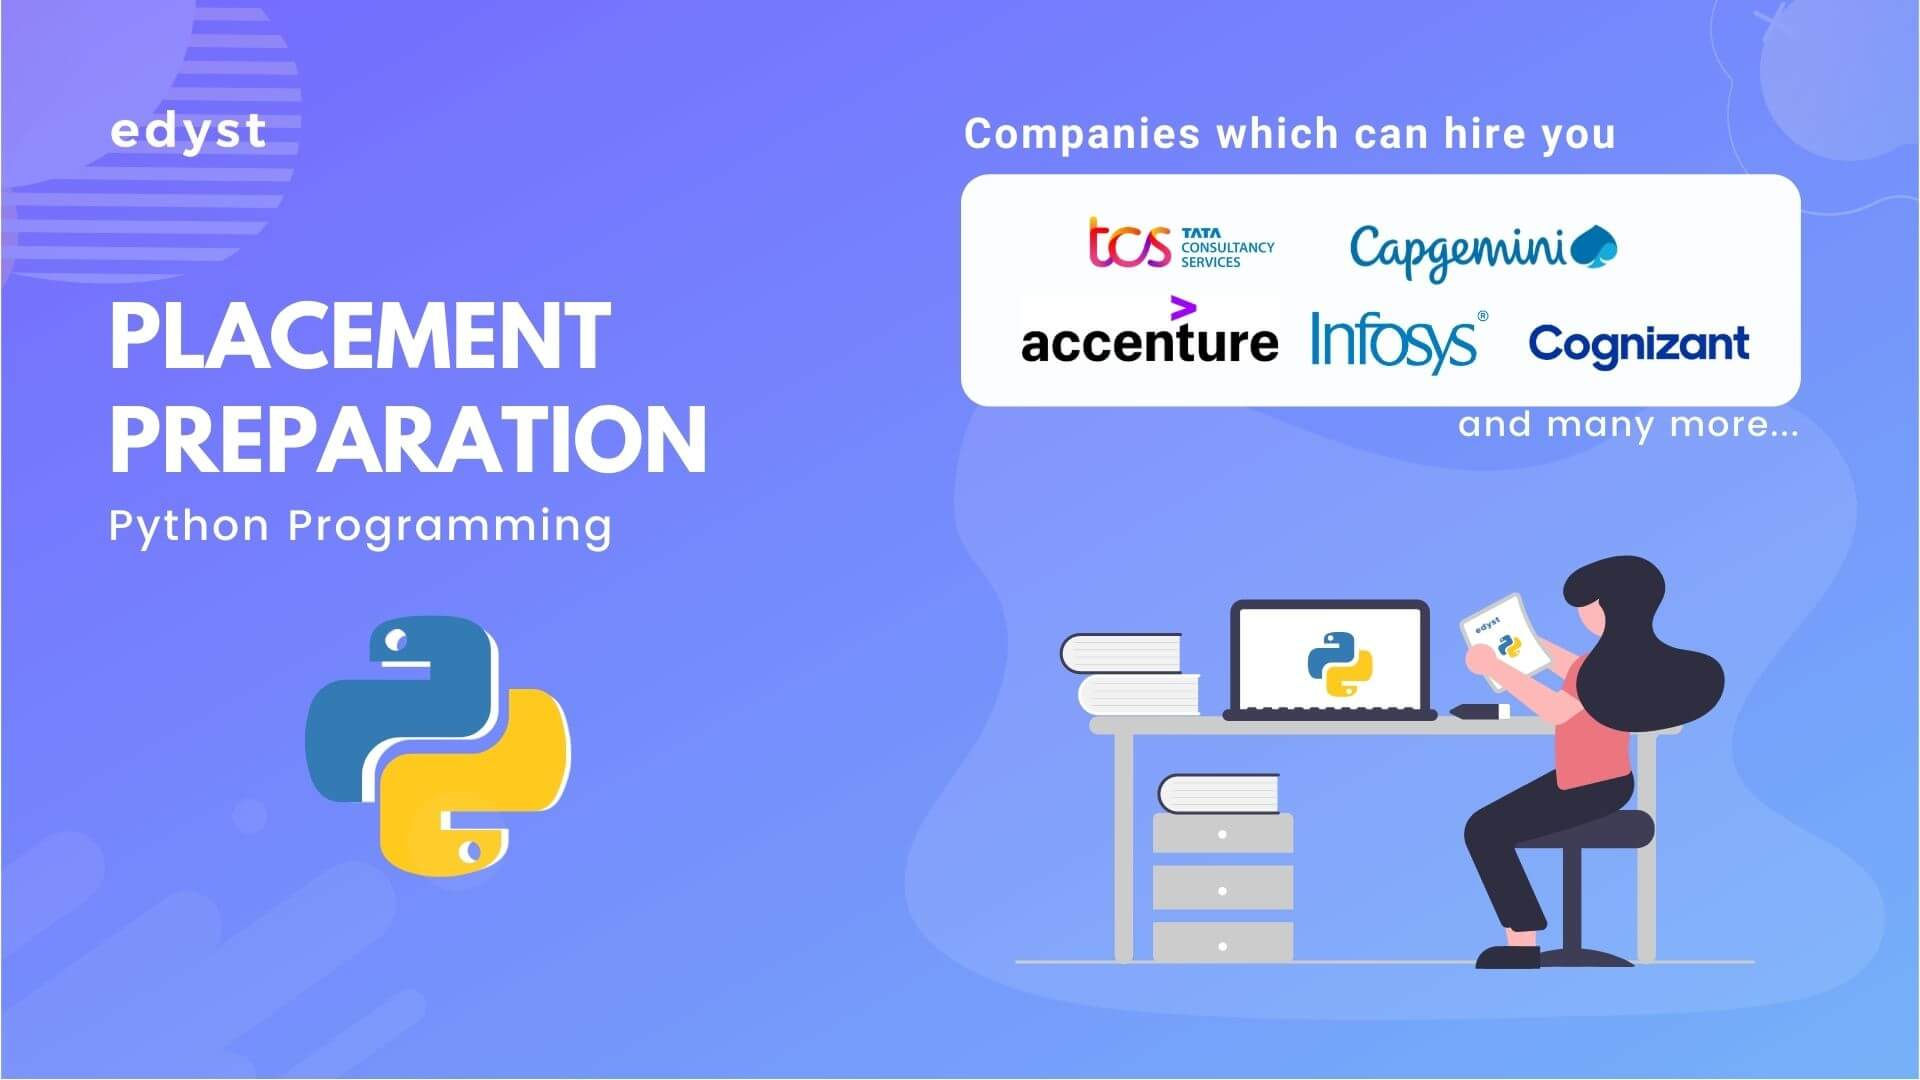 Python Programming for Placements